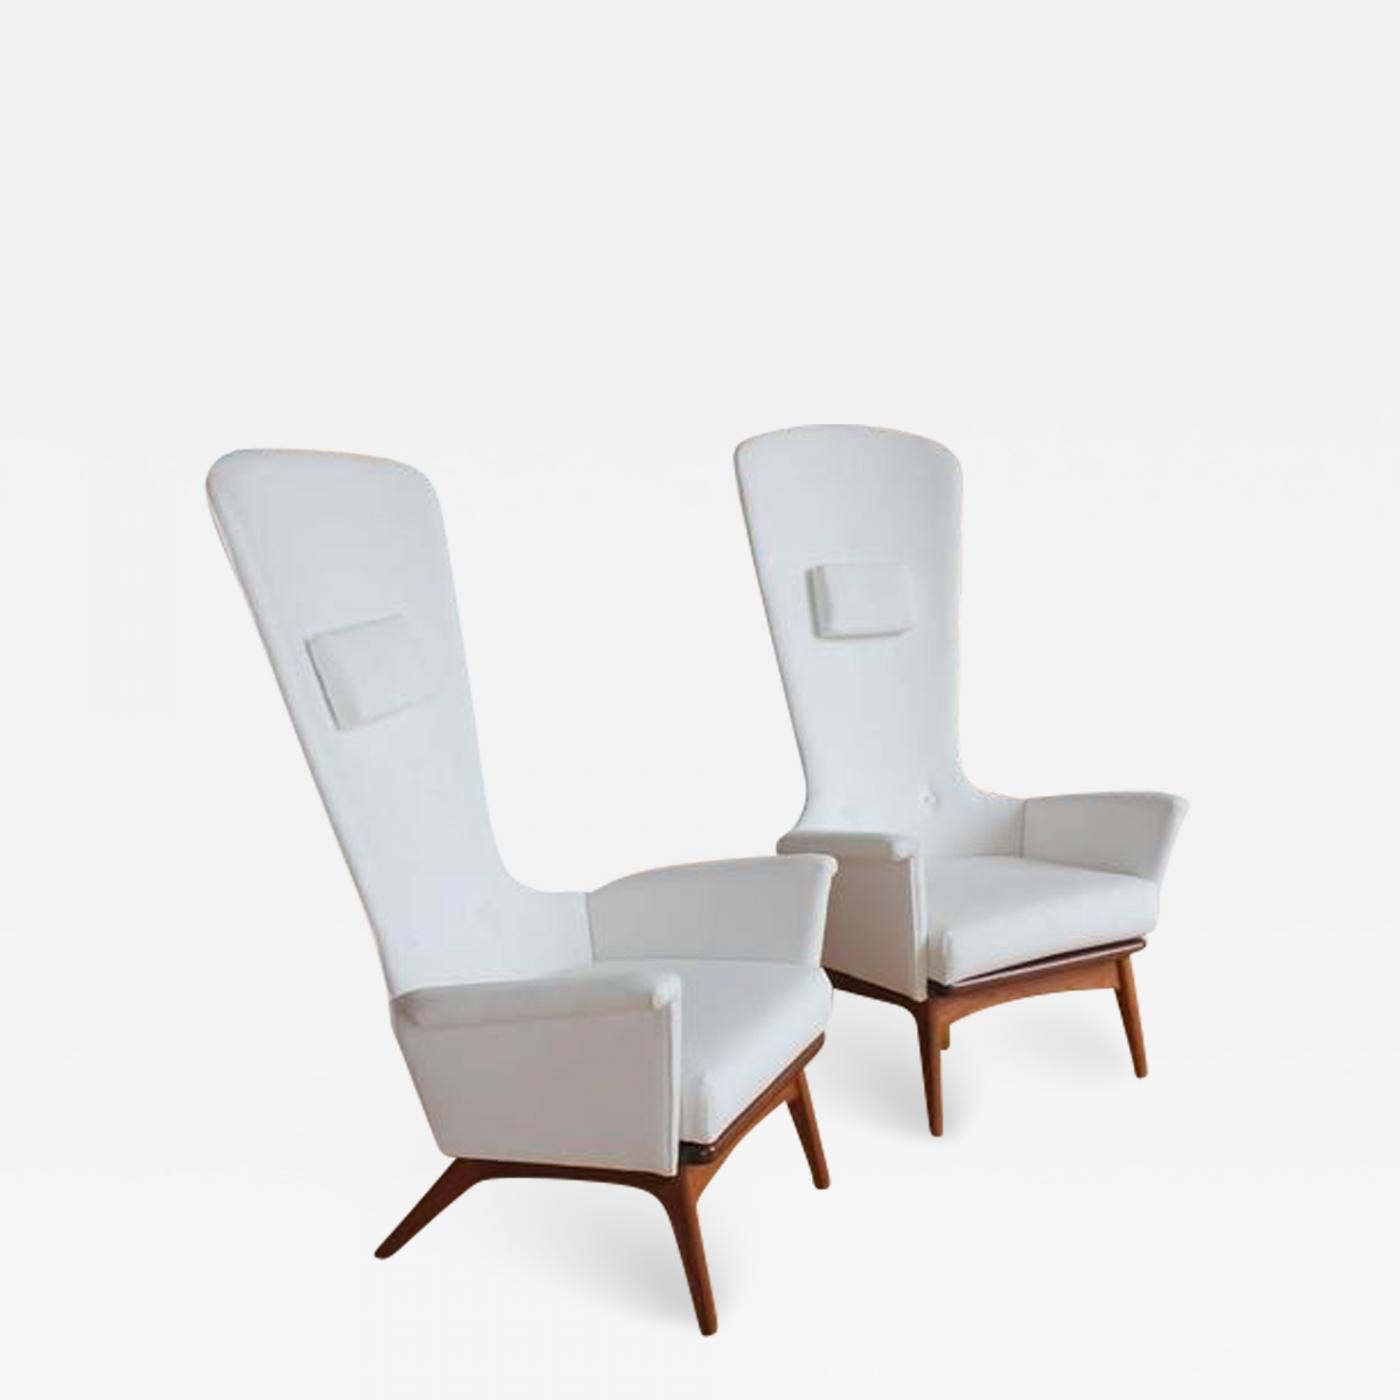 Awe Inspiring Adrian Pearsall Sculptural High Back Lounge Chair By Adrian Pearsall Camellatalisay Diy Chair Ideas Camellatalisaycom